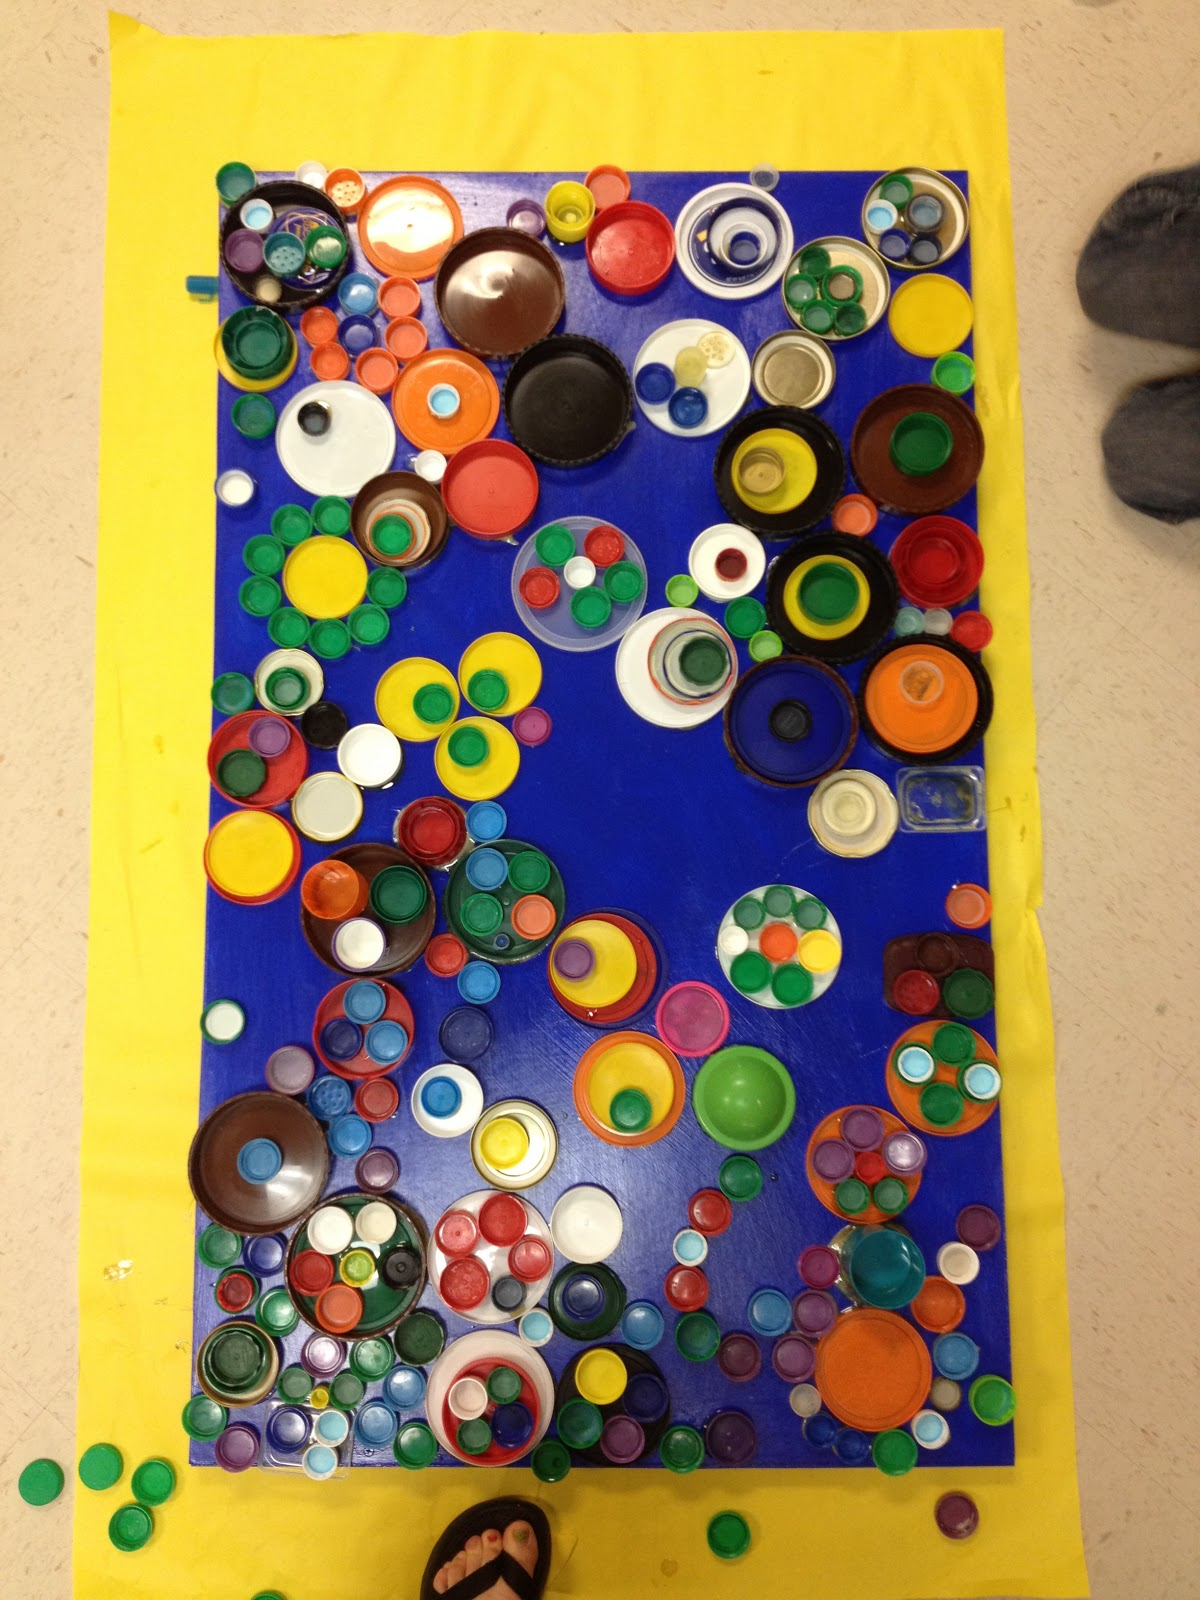 Candice ashment art reduce reuse recycle bottle lids for Recycled wall art ideas